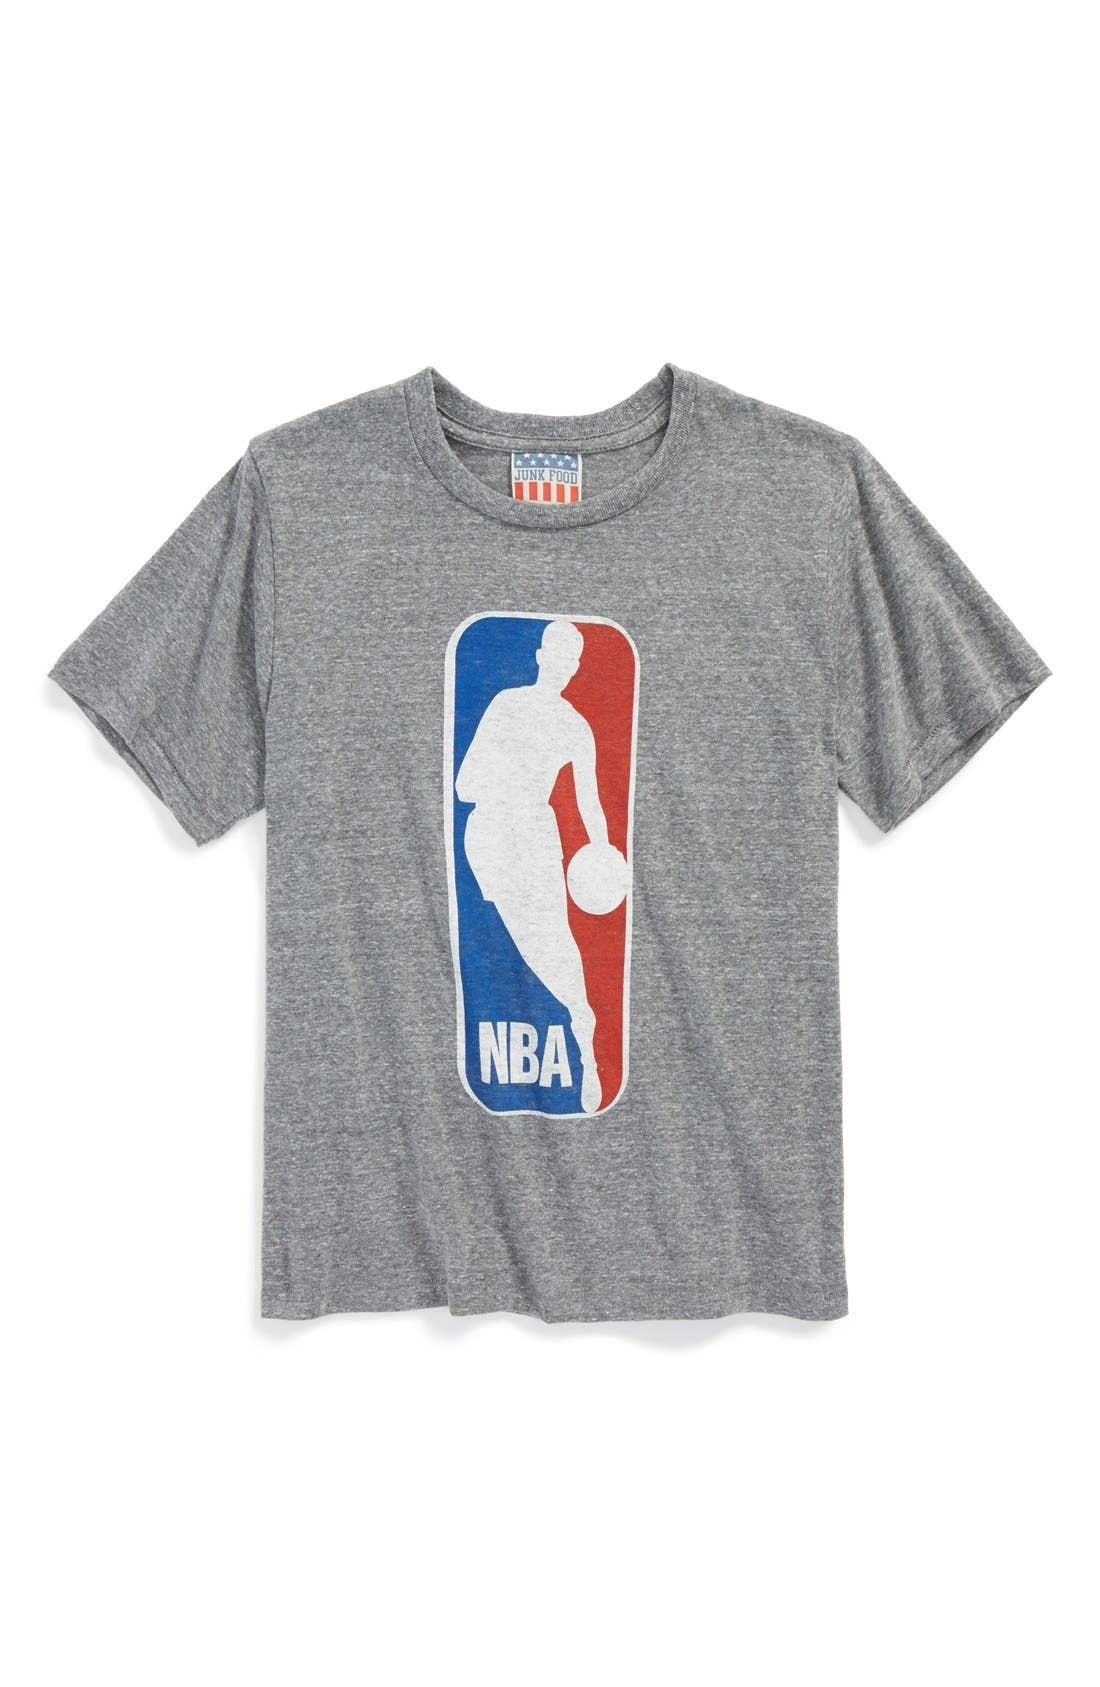 Alternate Image 1 Selected - Junk Food 'NBA Logo' Graphic T-Shirt (Toddler Boys, Little Boys & Big Boys)